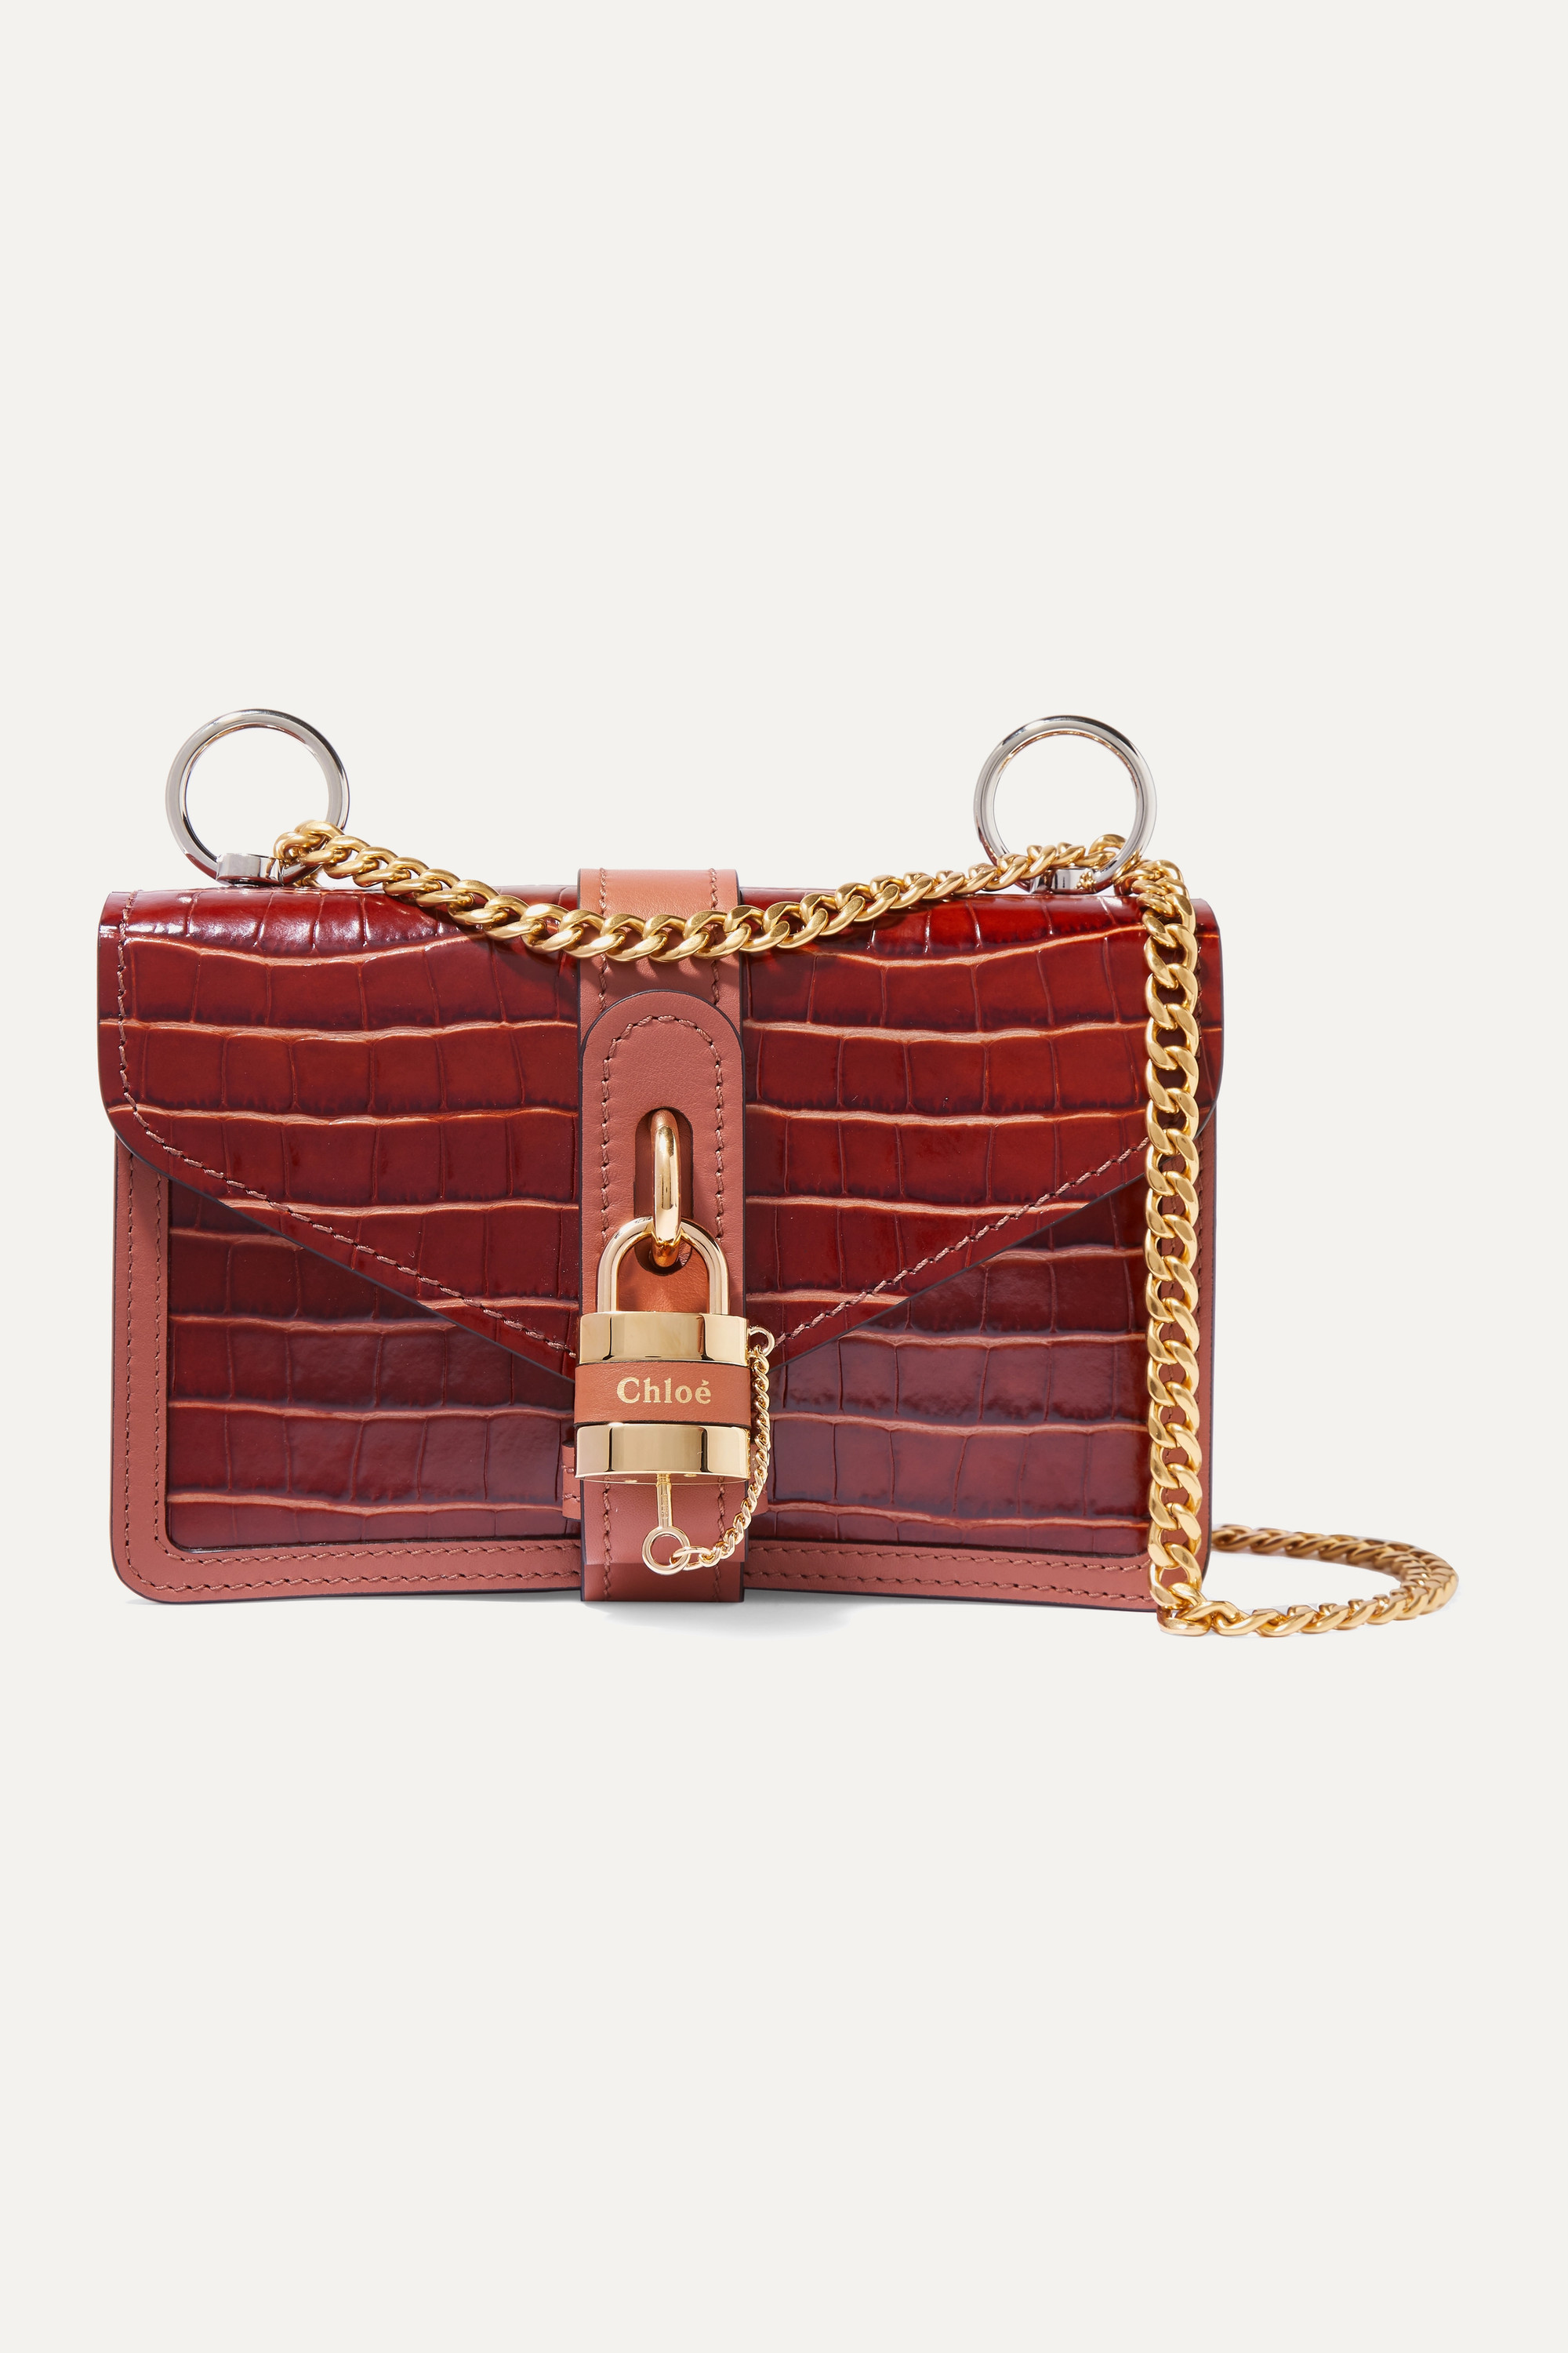 Chloé Aby Chain small croc-effect leather shoulder bag